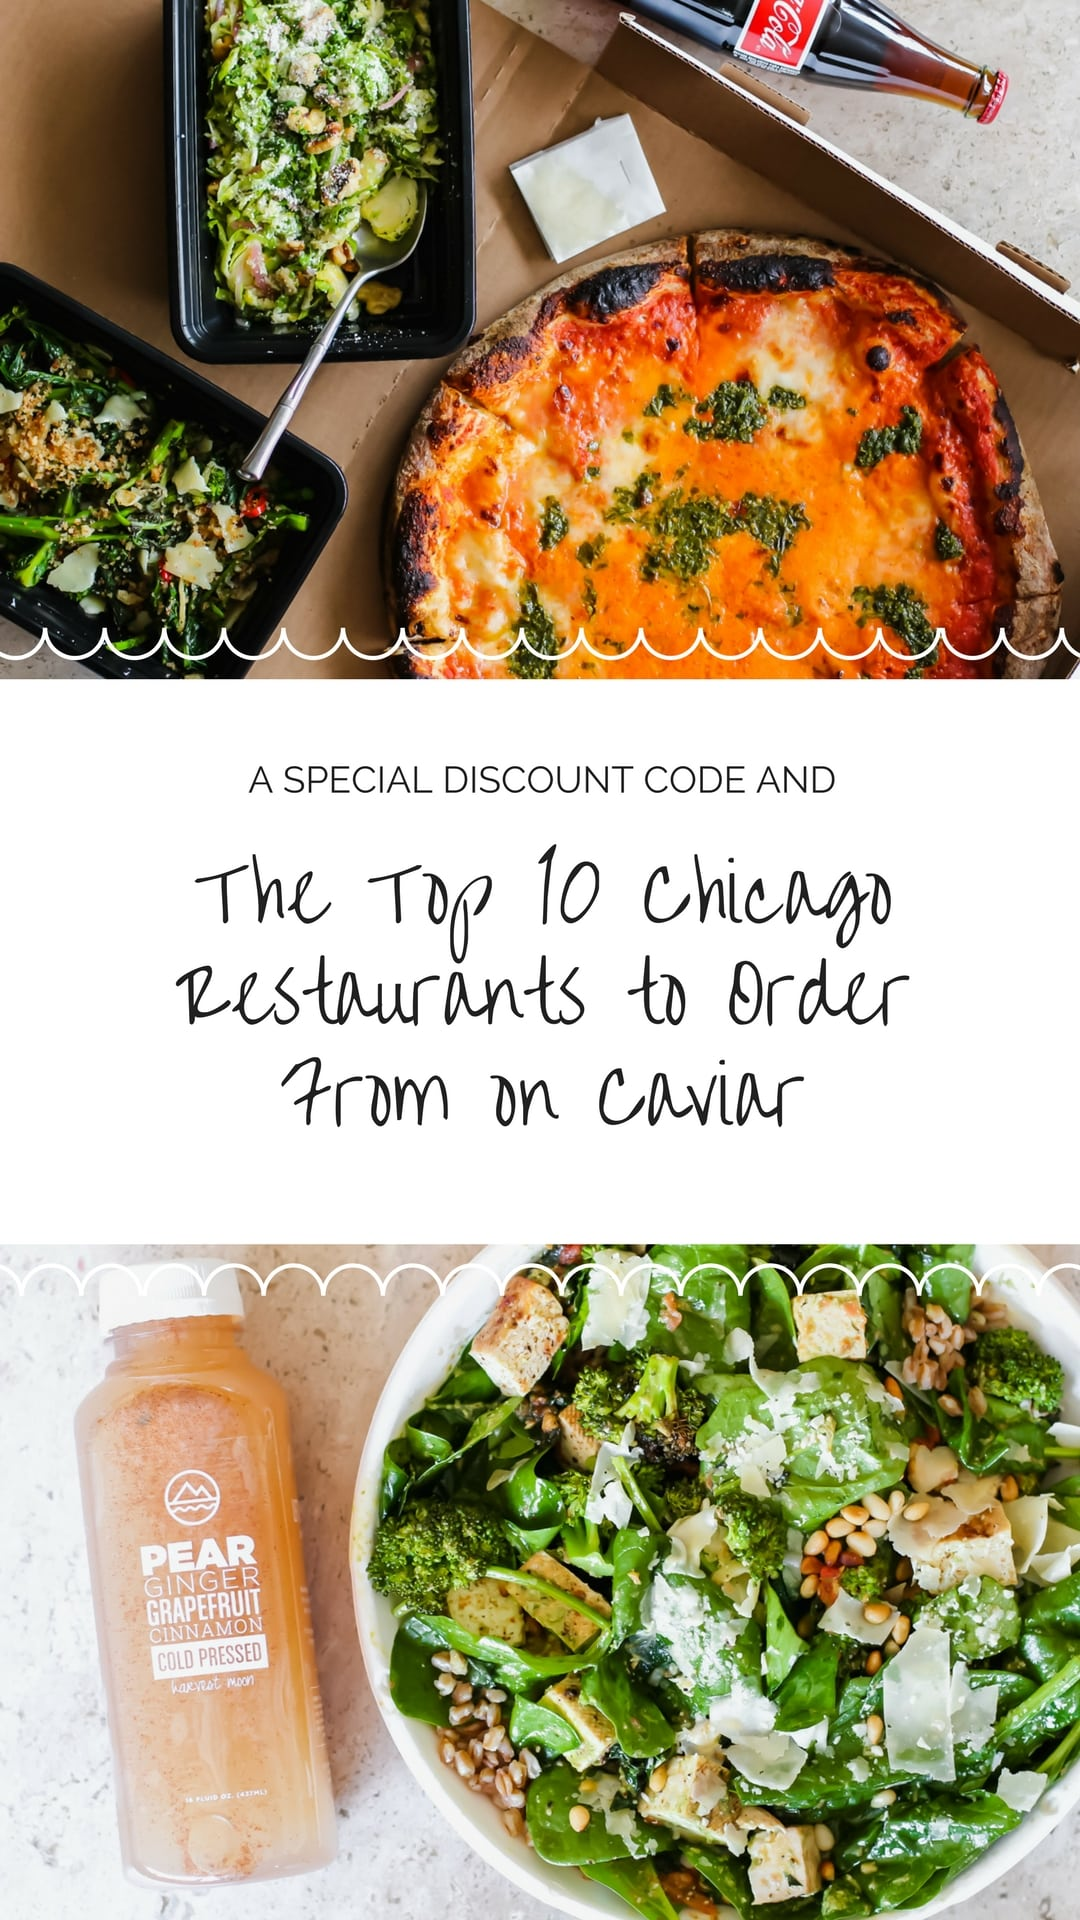 Caviar Discount Code Plus A List Of The Top 10 Restaurants To Order From